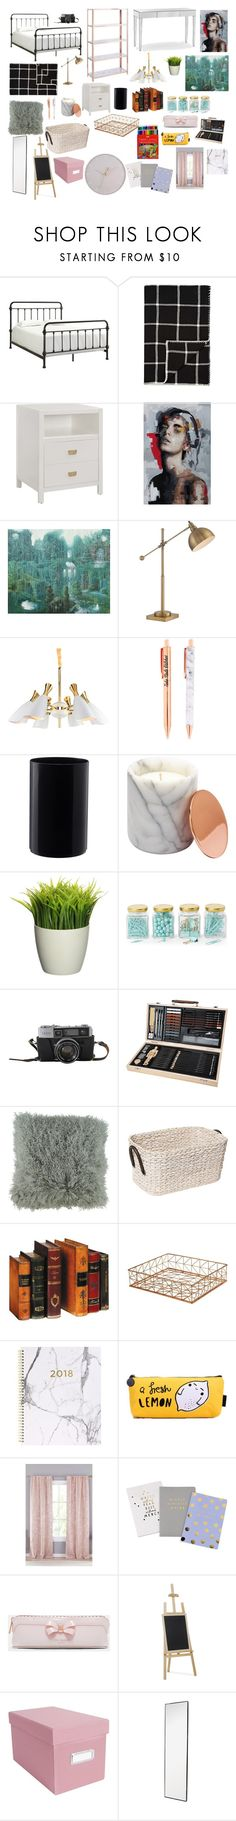 """pieza"" by zinara-ponce on Polyvore featuring interior, interiors, interior design, hogar, home decor, interior decorating, Weston, Alicia Adams, Lite Source y Argento SC"